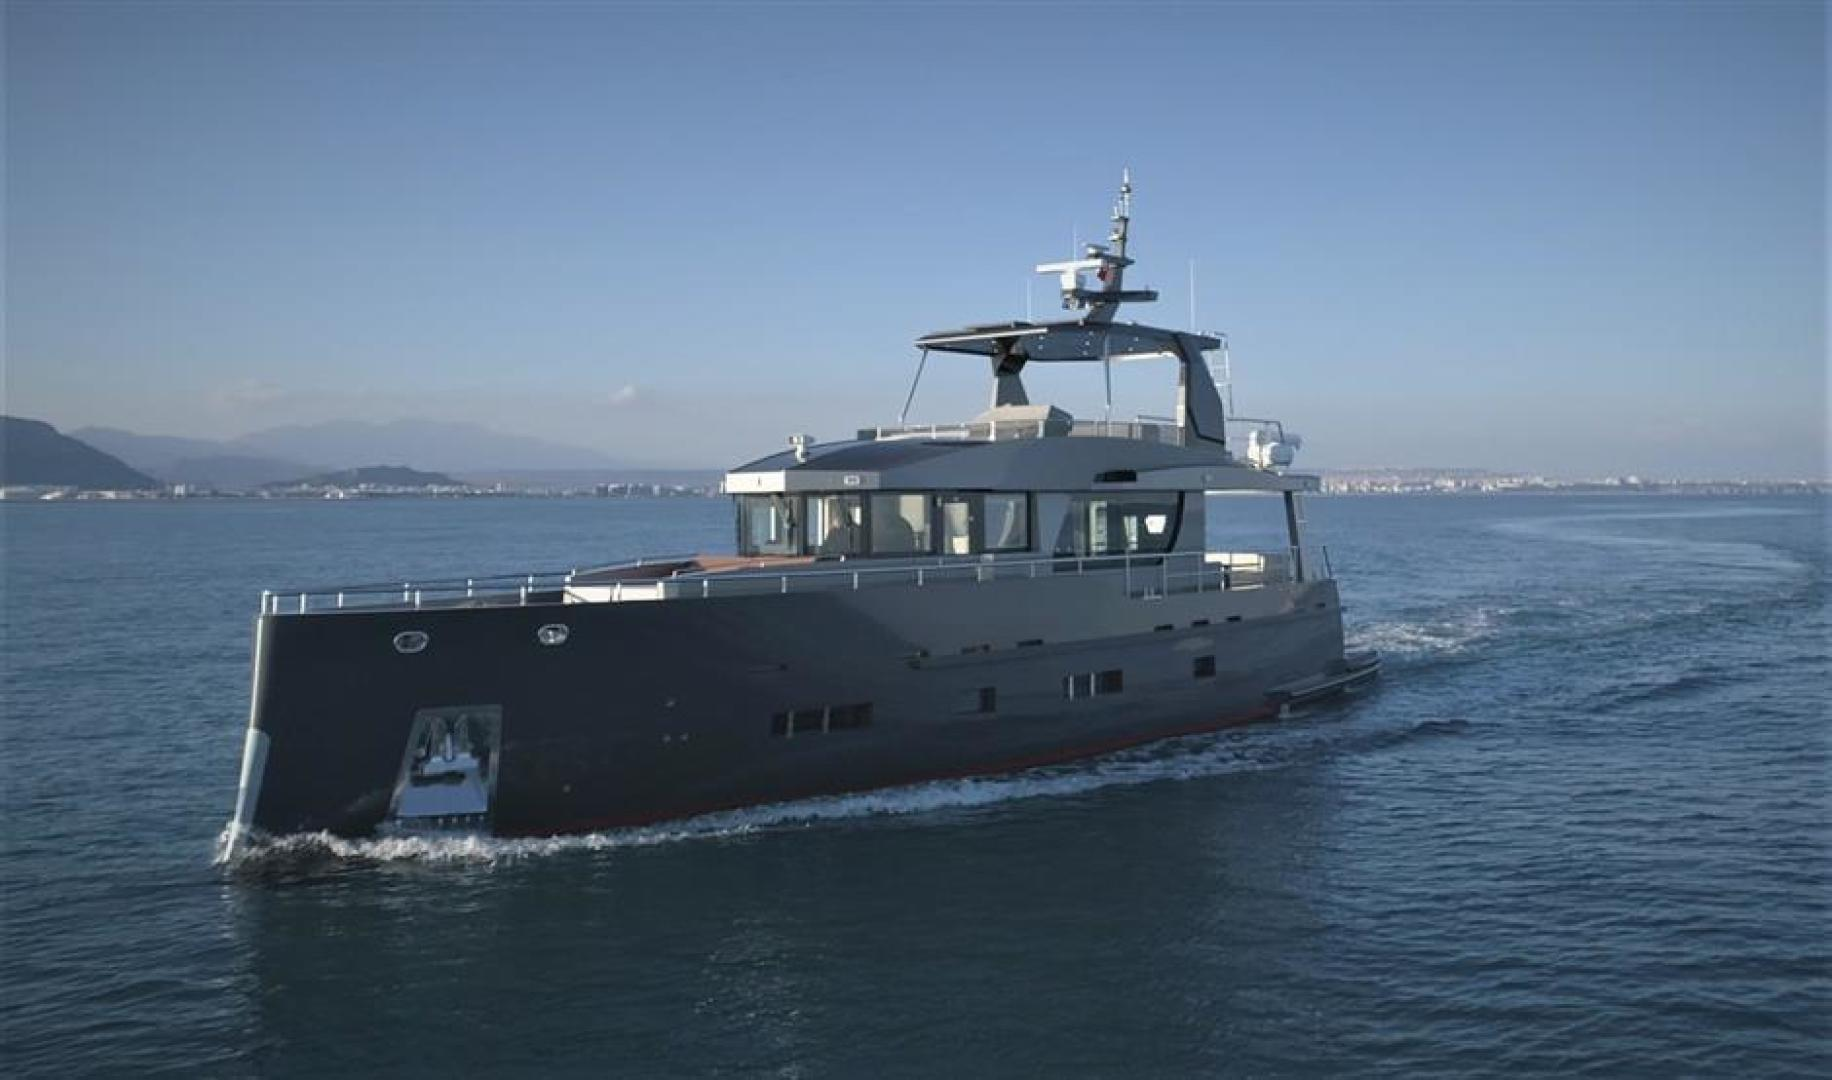 Bering-Expedition Yacht 2019-Expedition Yacht Turkey-1405108   Thumbnail